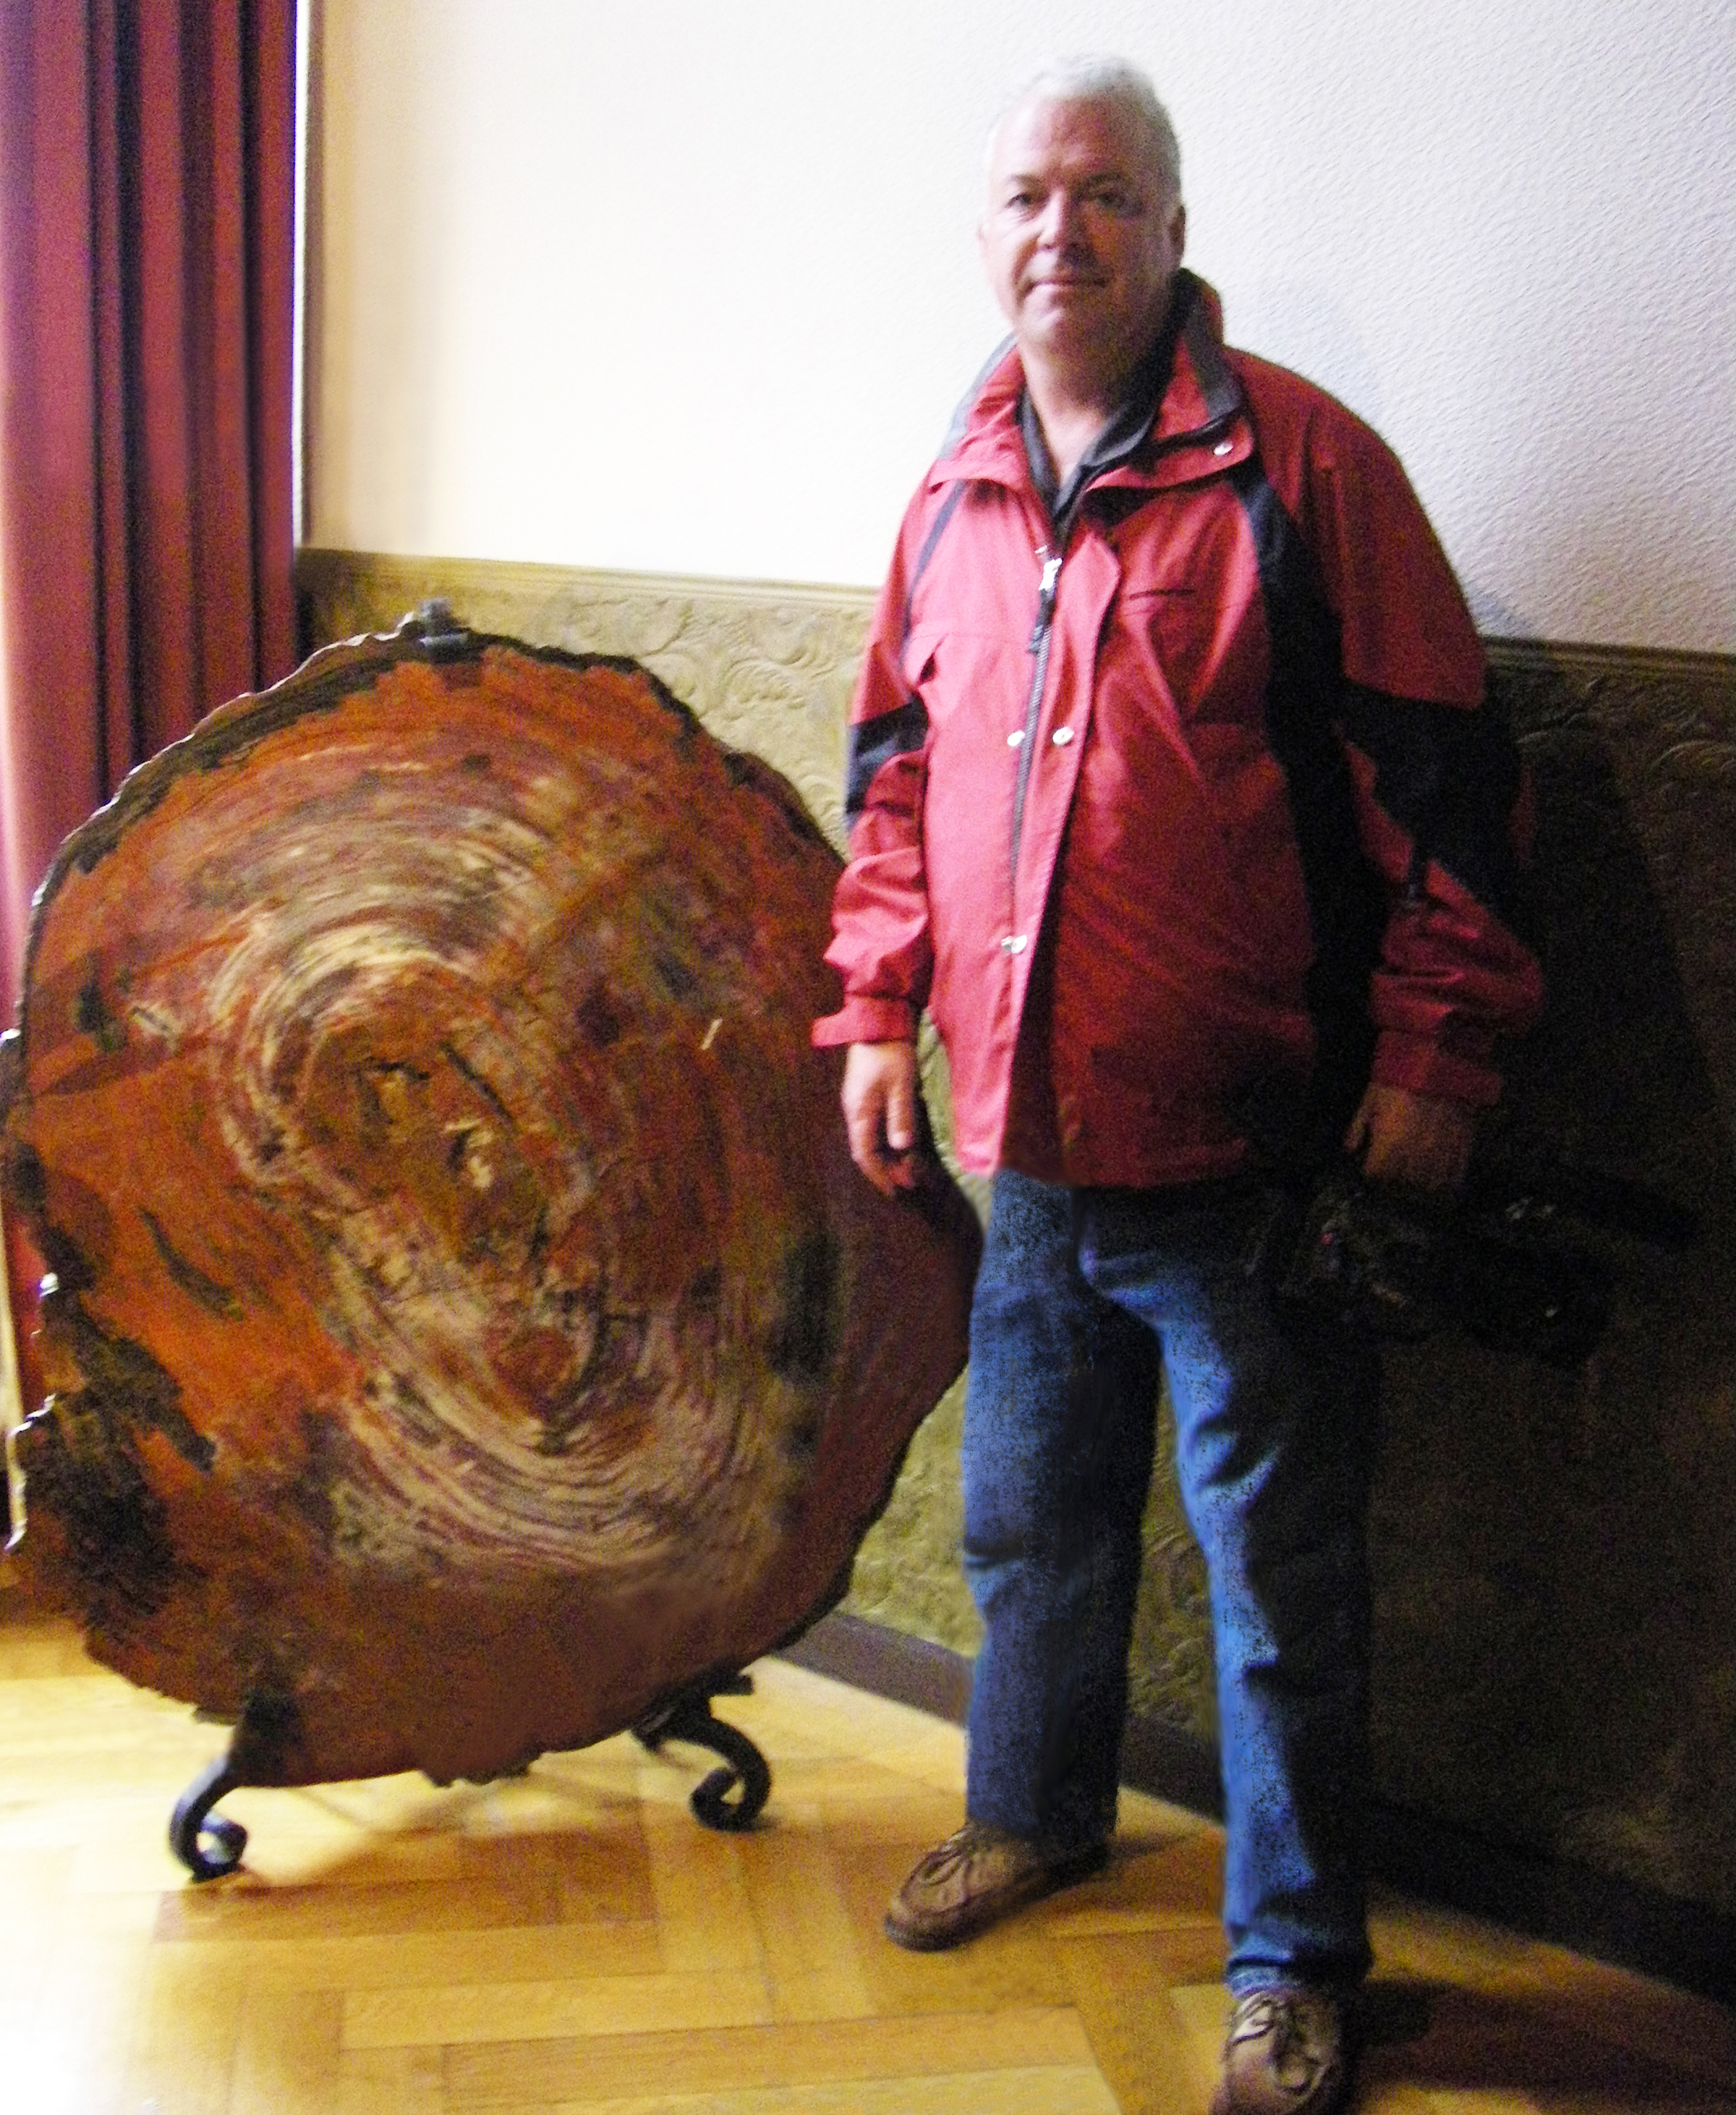 Jay King with large Petriefied Wood Specimen